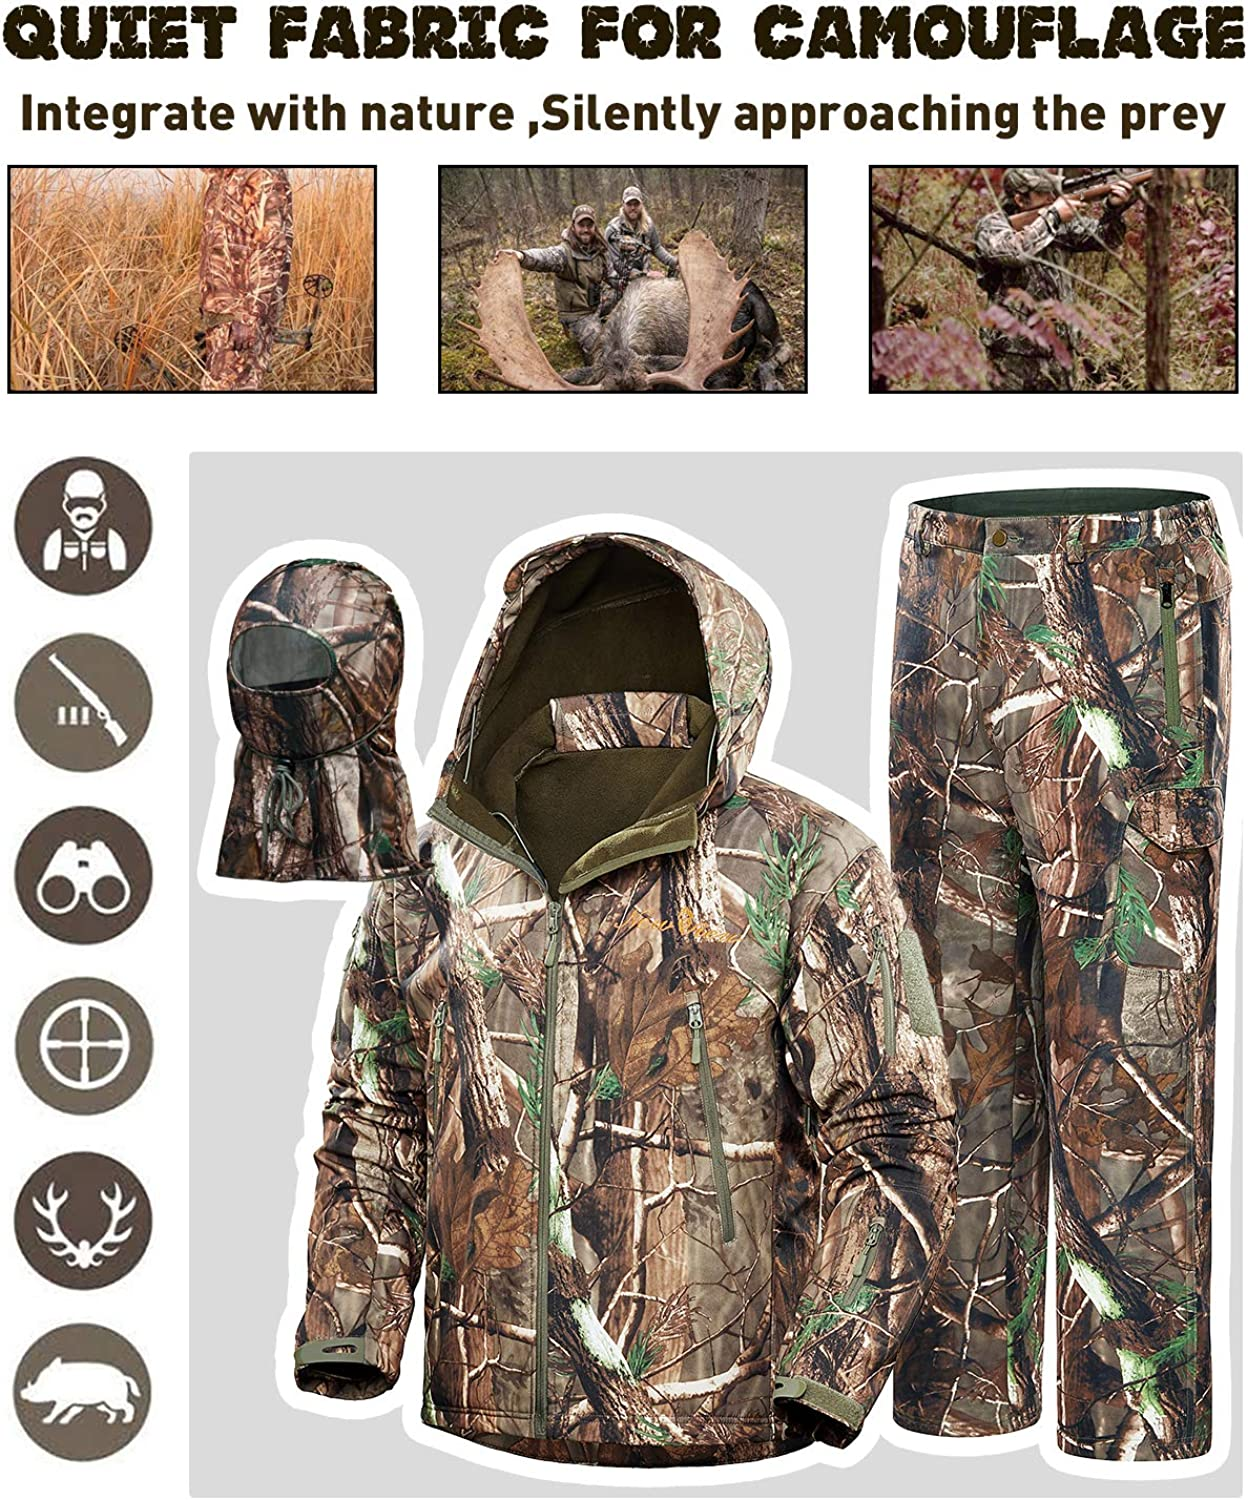 NEW VIEW 2020 Upgrade Hunting Clothes for Men, Silent Water Resistant Hunting Suits, Camo Hunting Camouflage Hooded Jacket, Hunting Pants : Clothing